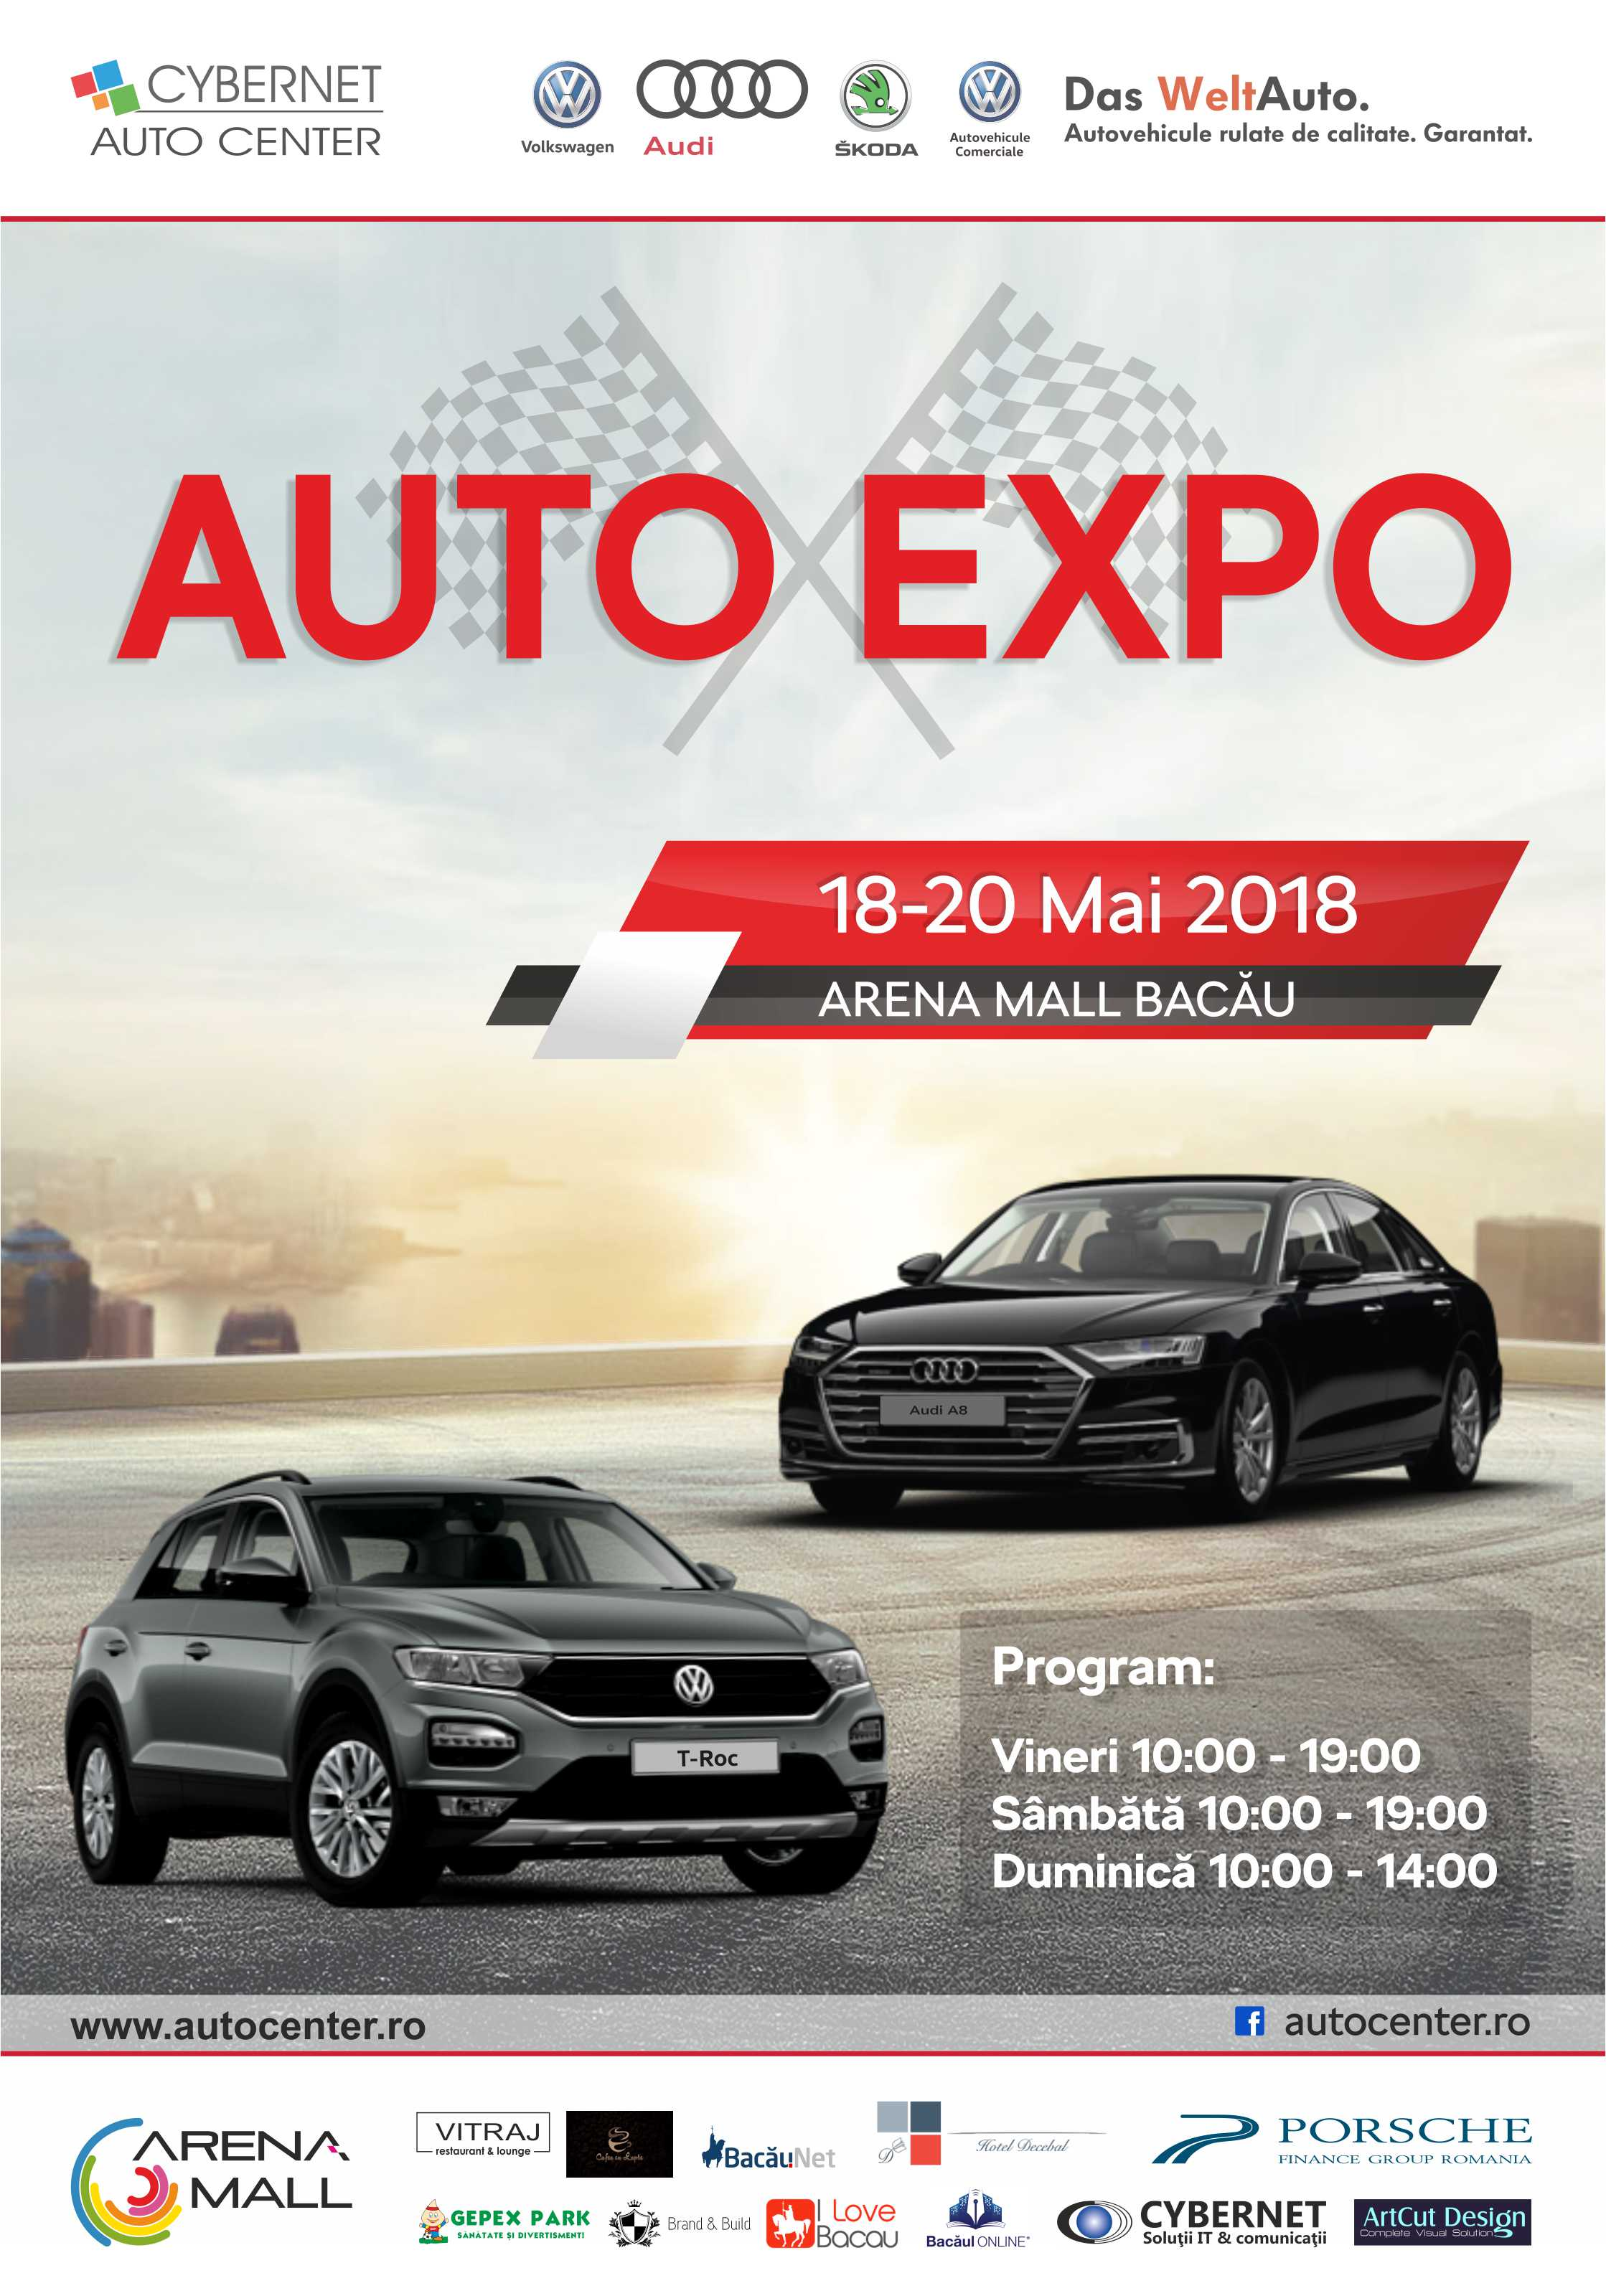 Poster AUTO EXPO, Cybernet Auto Center, 18-20.04.2018